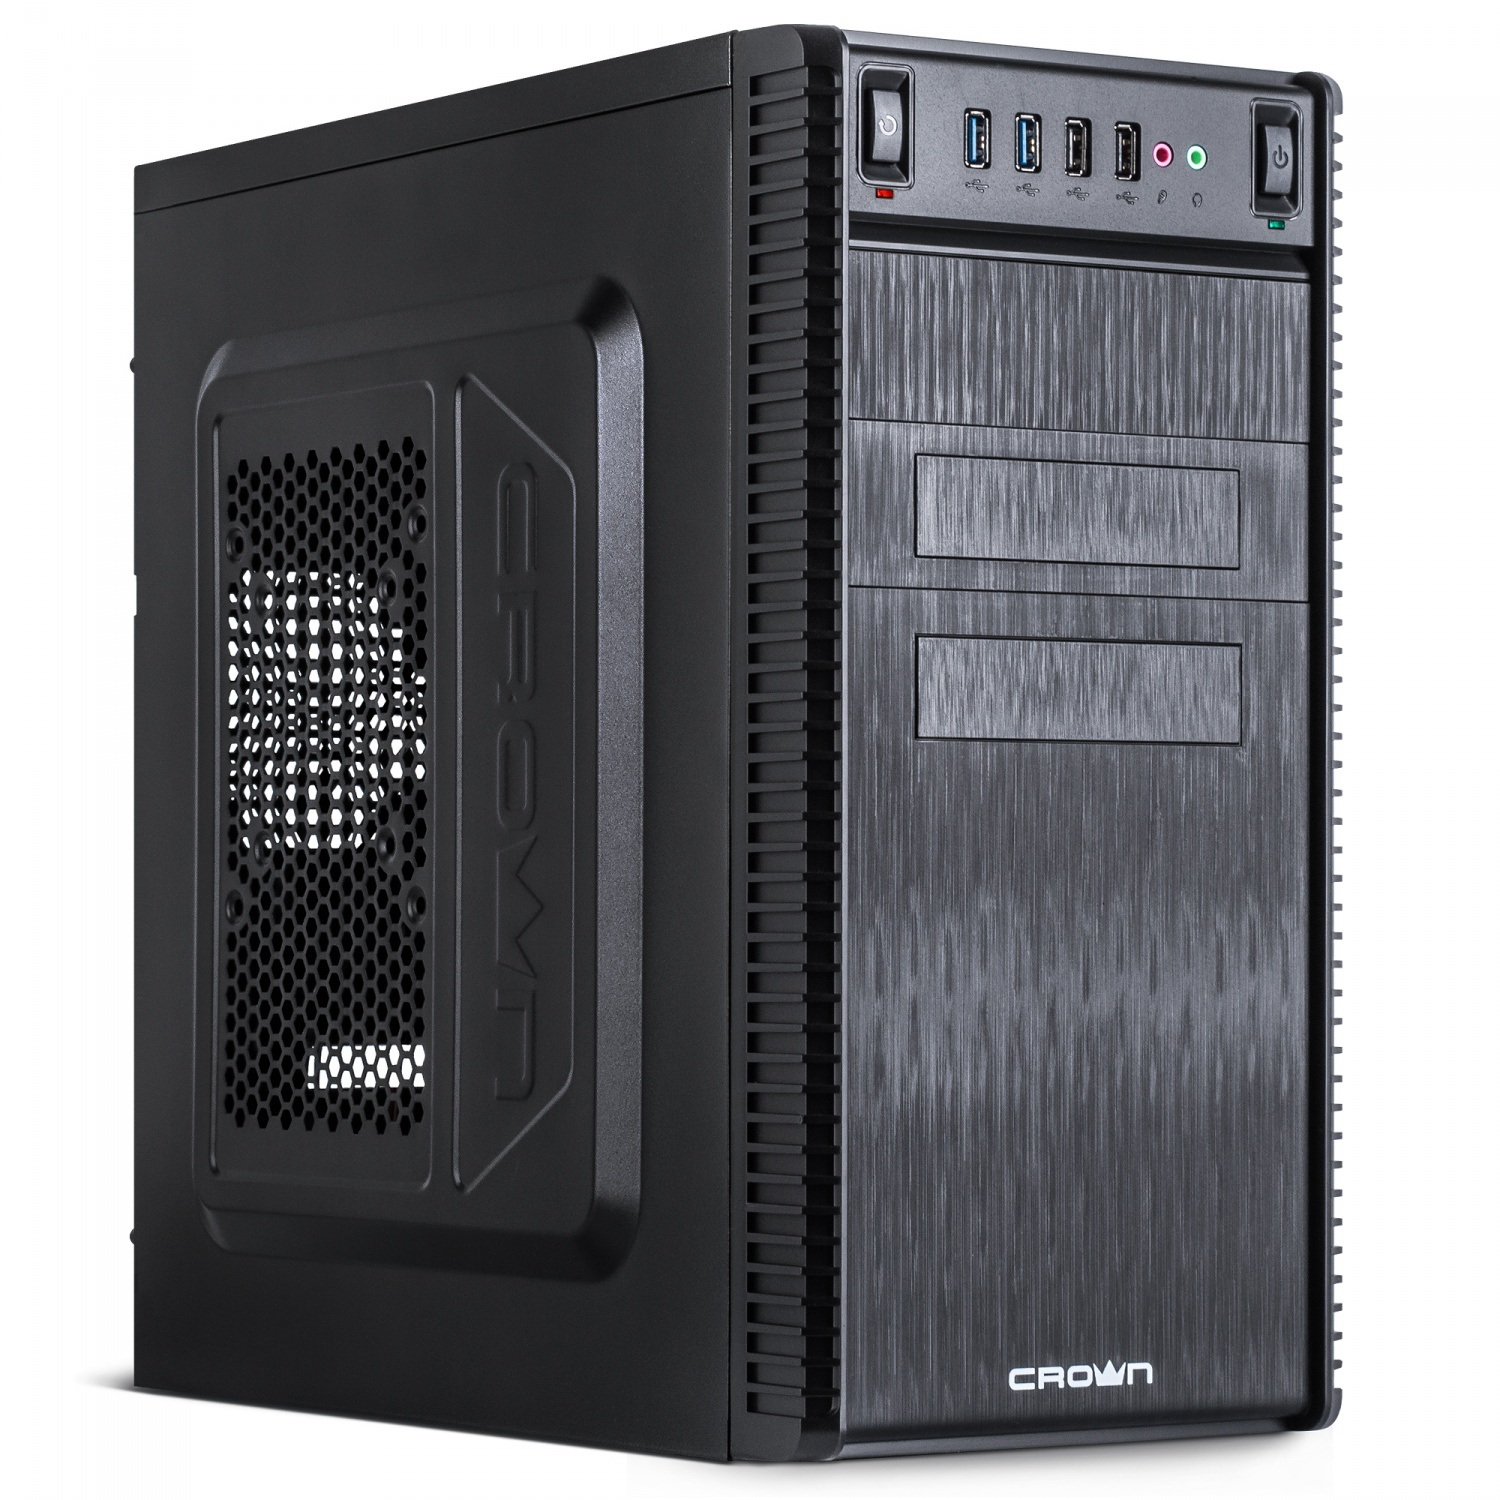 Корпус MiniTower CROWN CMC-403 black mATX (CM-500office) цена